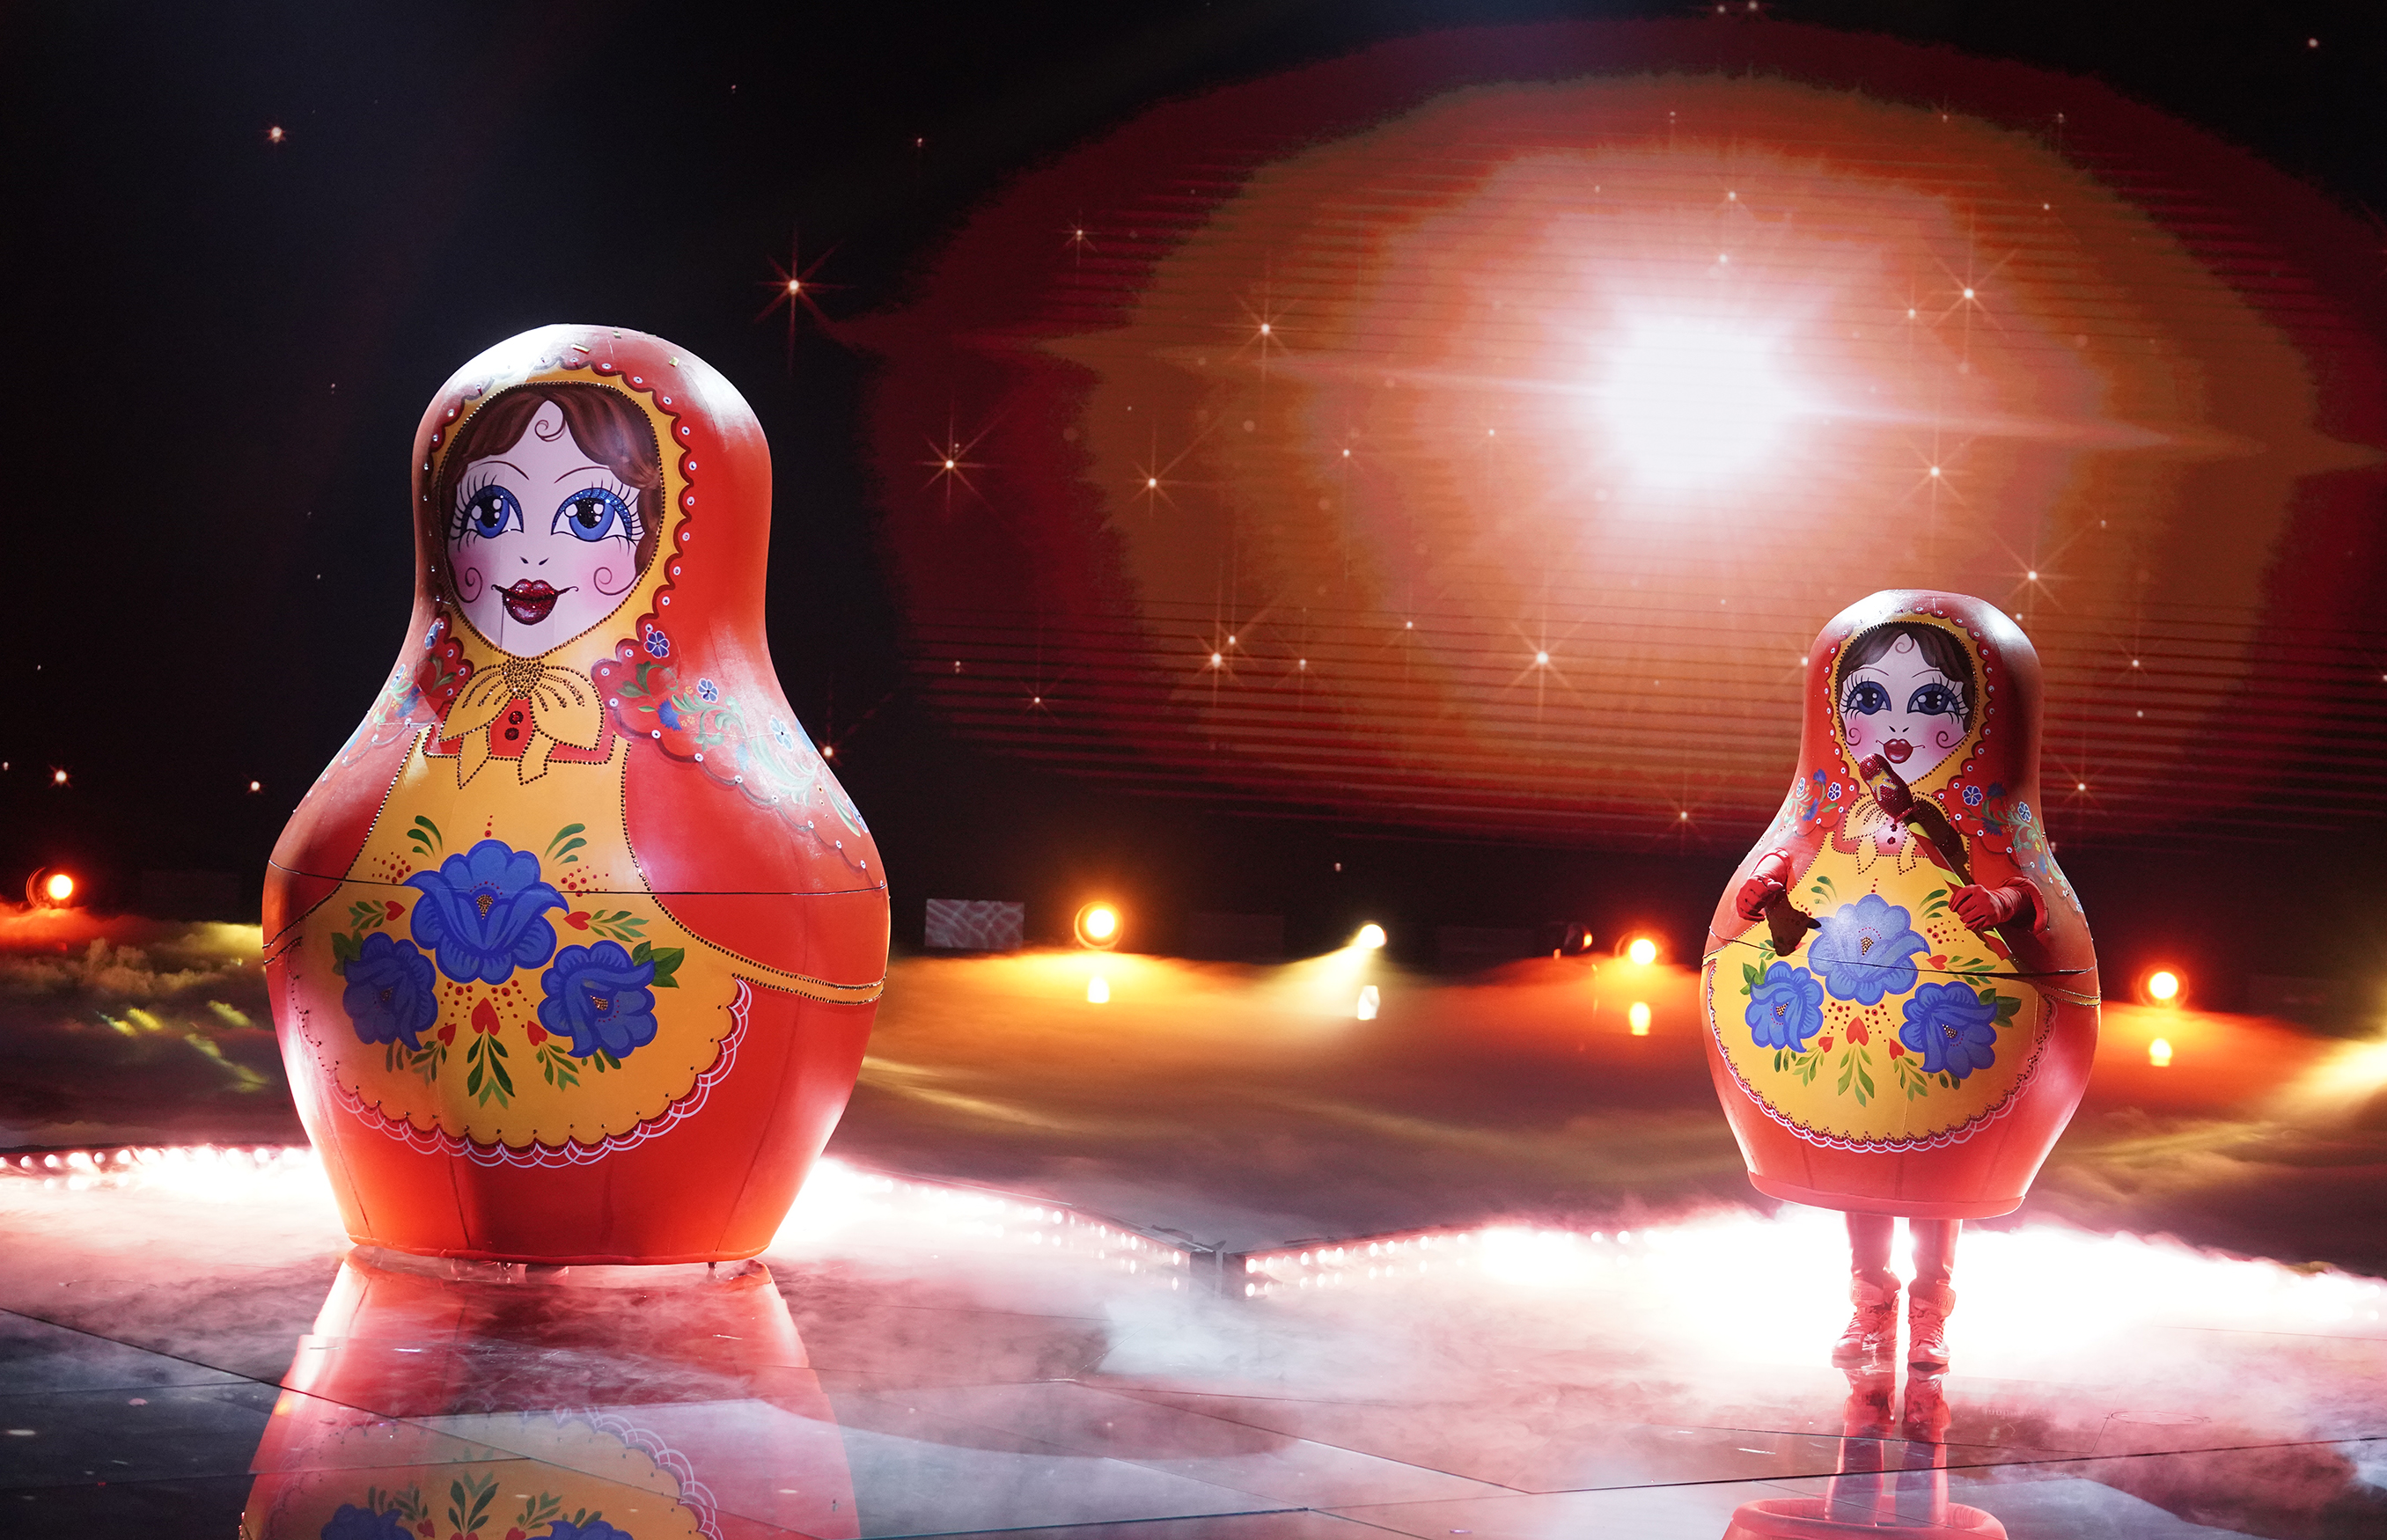 """THE MASKED SINGER: Russian Dolls in the """"The Spicy Six - The Competition Heats Up!"""" episode of THE MASKED SINGER airing Wednesday, May 5 (8:00-9:00 PM ET/PT), © 2021 FOX MEDIA LLC. CR: Michael Becker/FOX."""